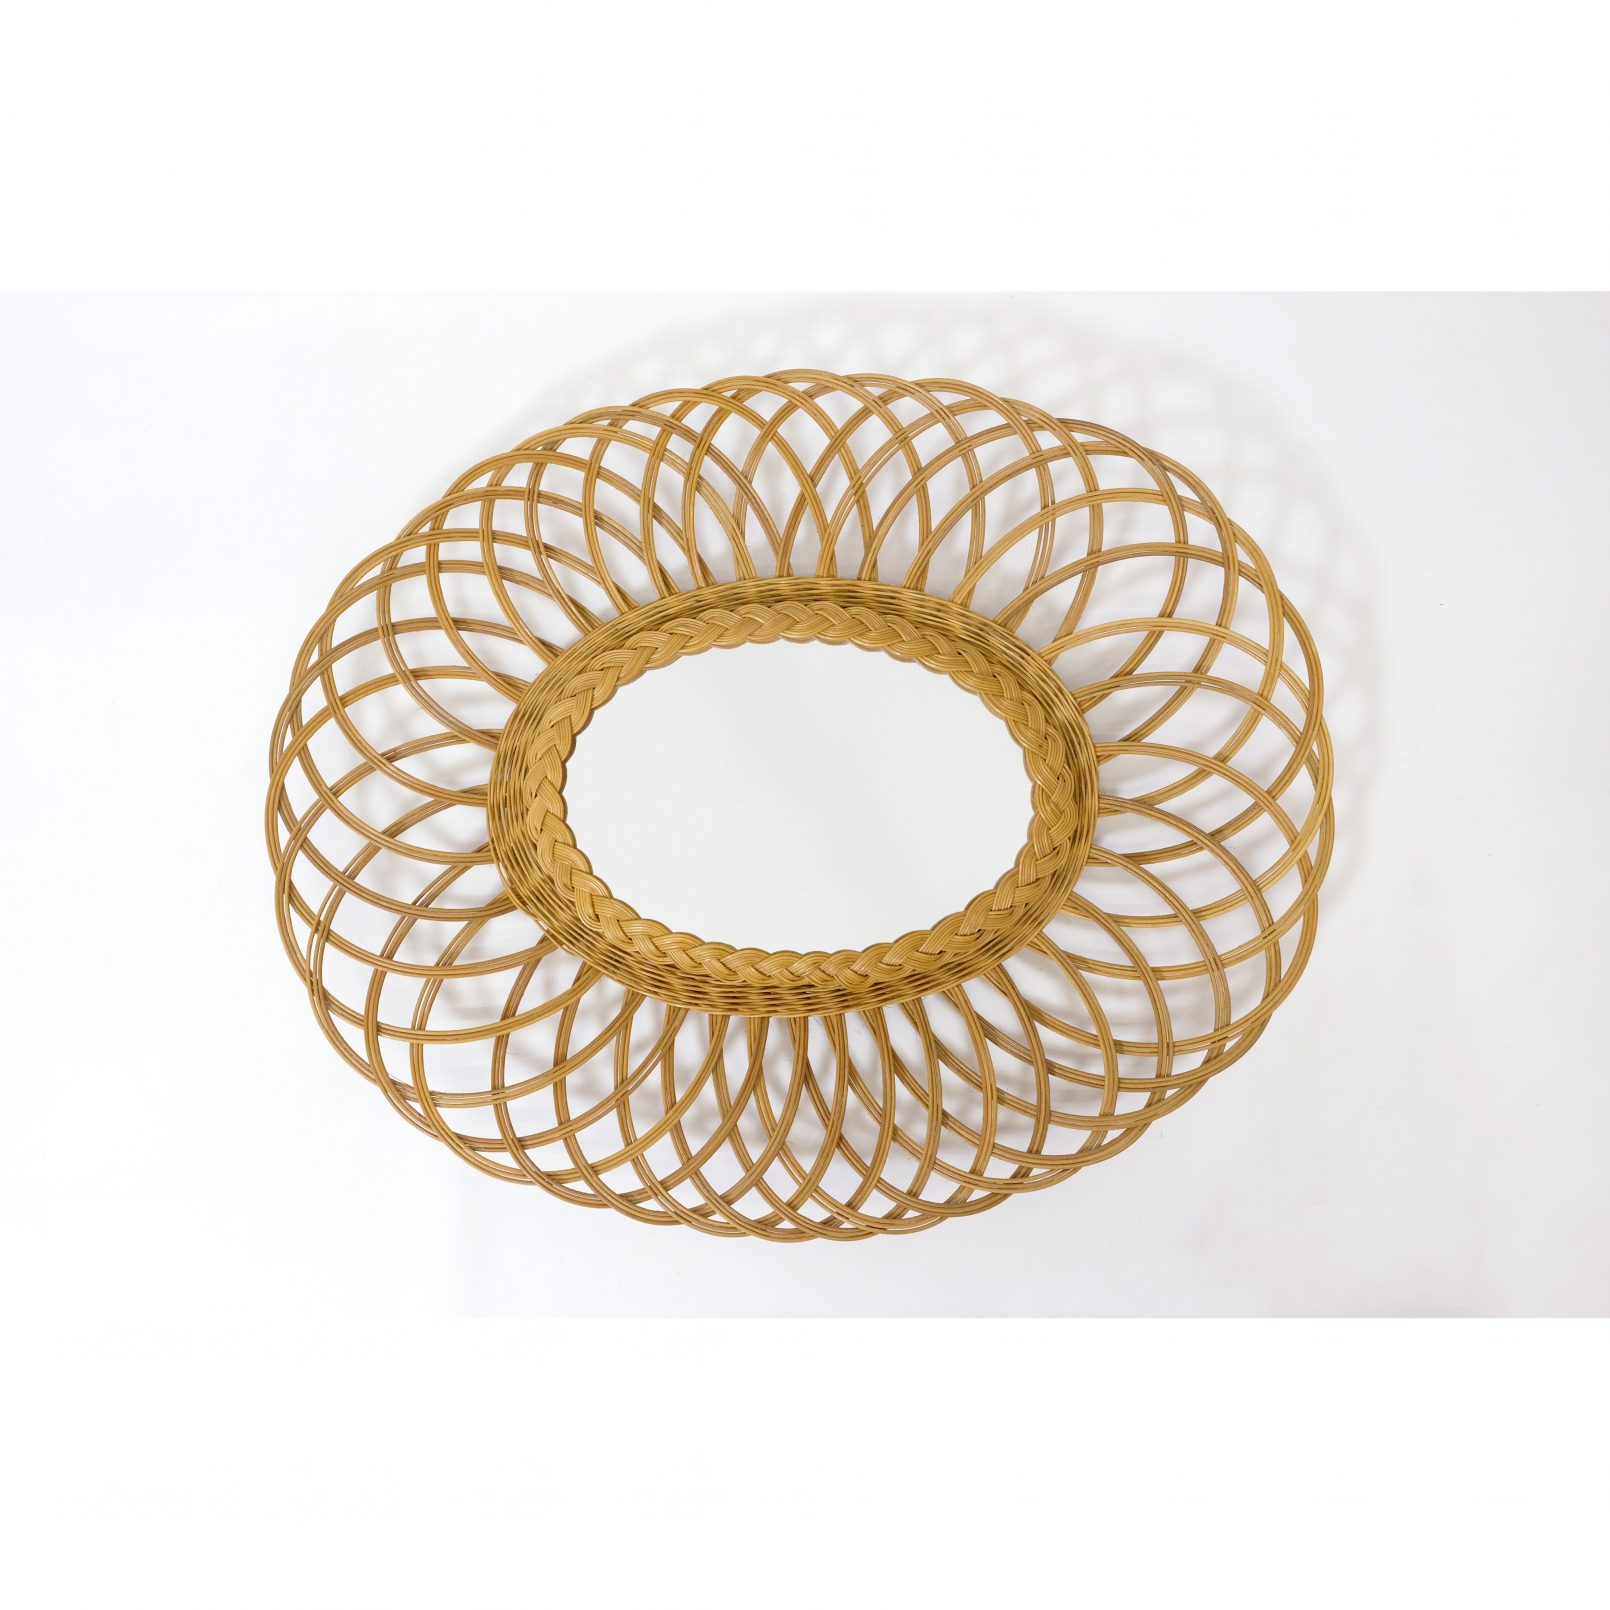 Oval wicker mirror, 60x50 cm.